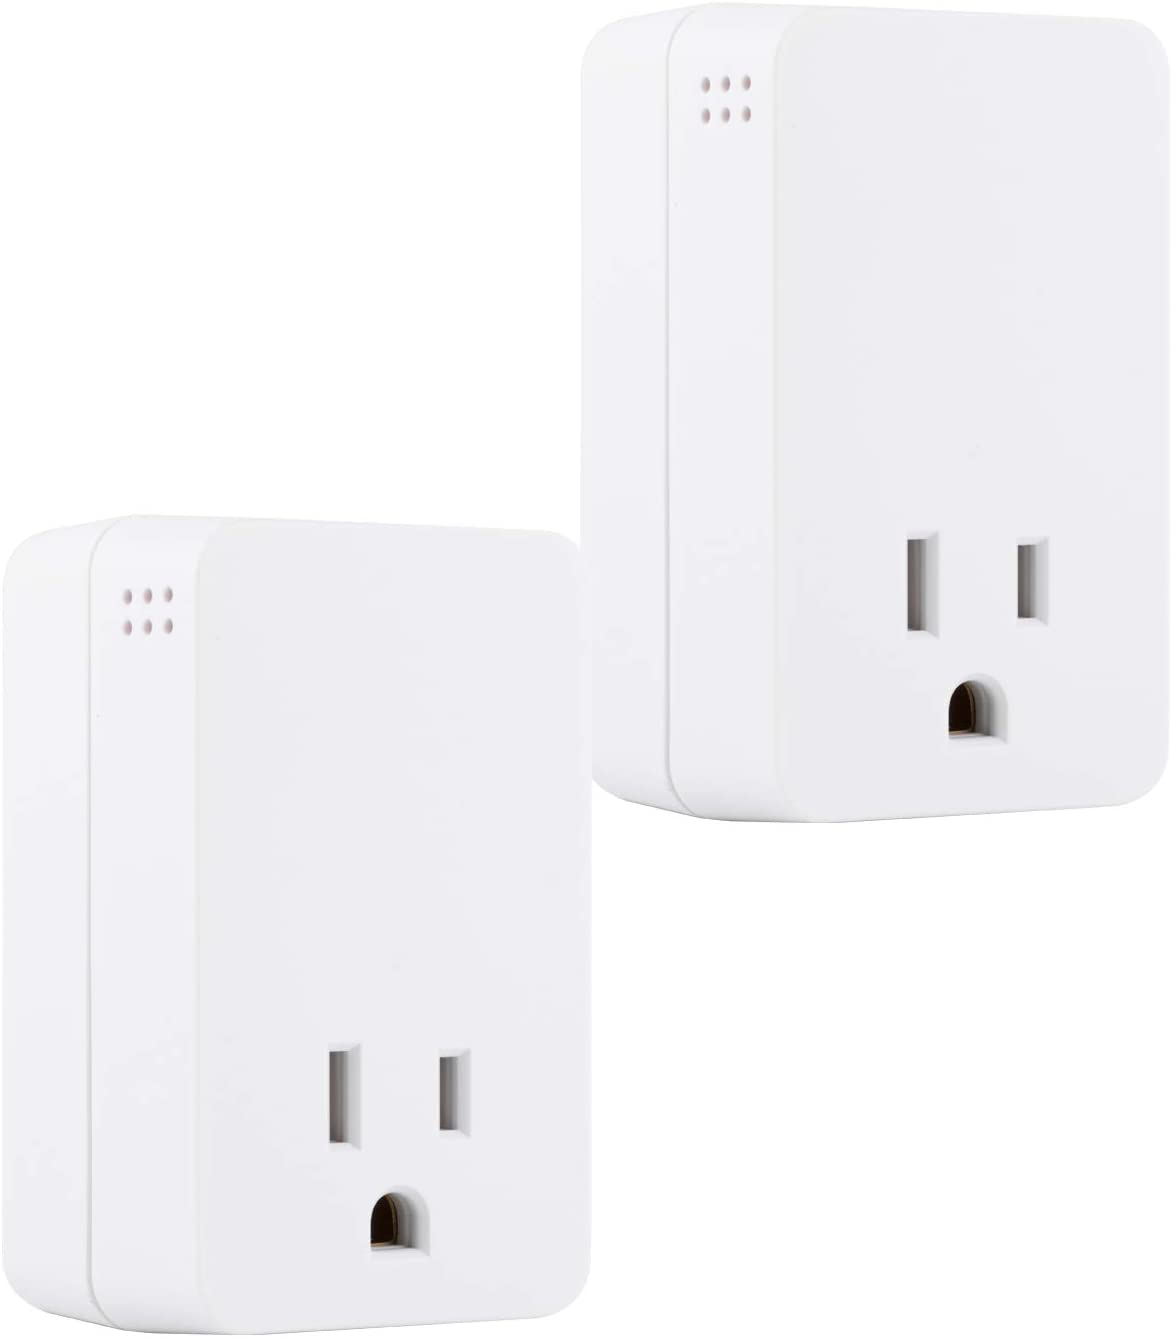 GE UltraPro Surge Protector with Audible End of Service Alarm, 2 Pack, Fits Behind Hard-to-Reach Areas, 1 Outlet, 1080 Joules Protection Rating, 53868, White